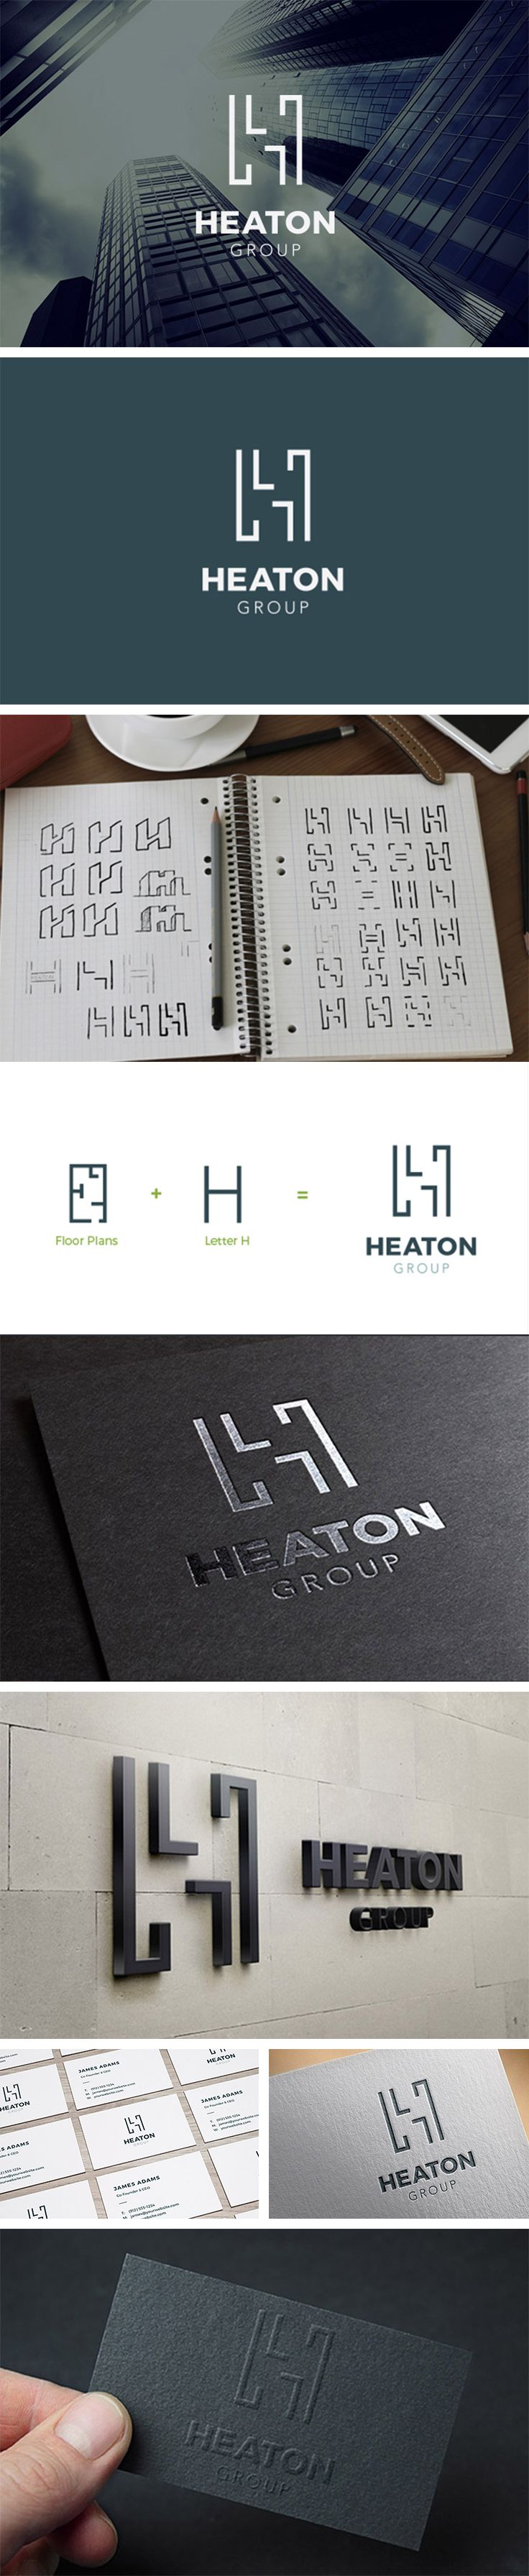 작업과정에서의 수많은 스케치가 인상적_Logo Design Real Estate, Brand Identity Property Development | Letter H, Floor Plan, bold, builder, geometric, line, modern, minimalist, mark | Valhalla Creative Design, Perth